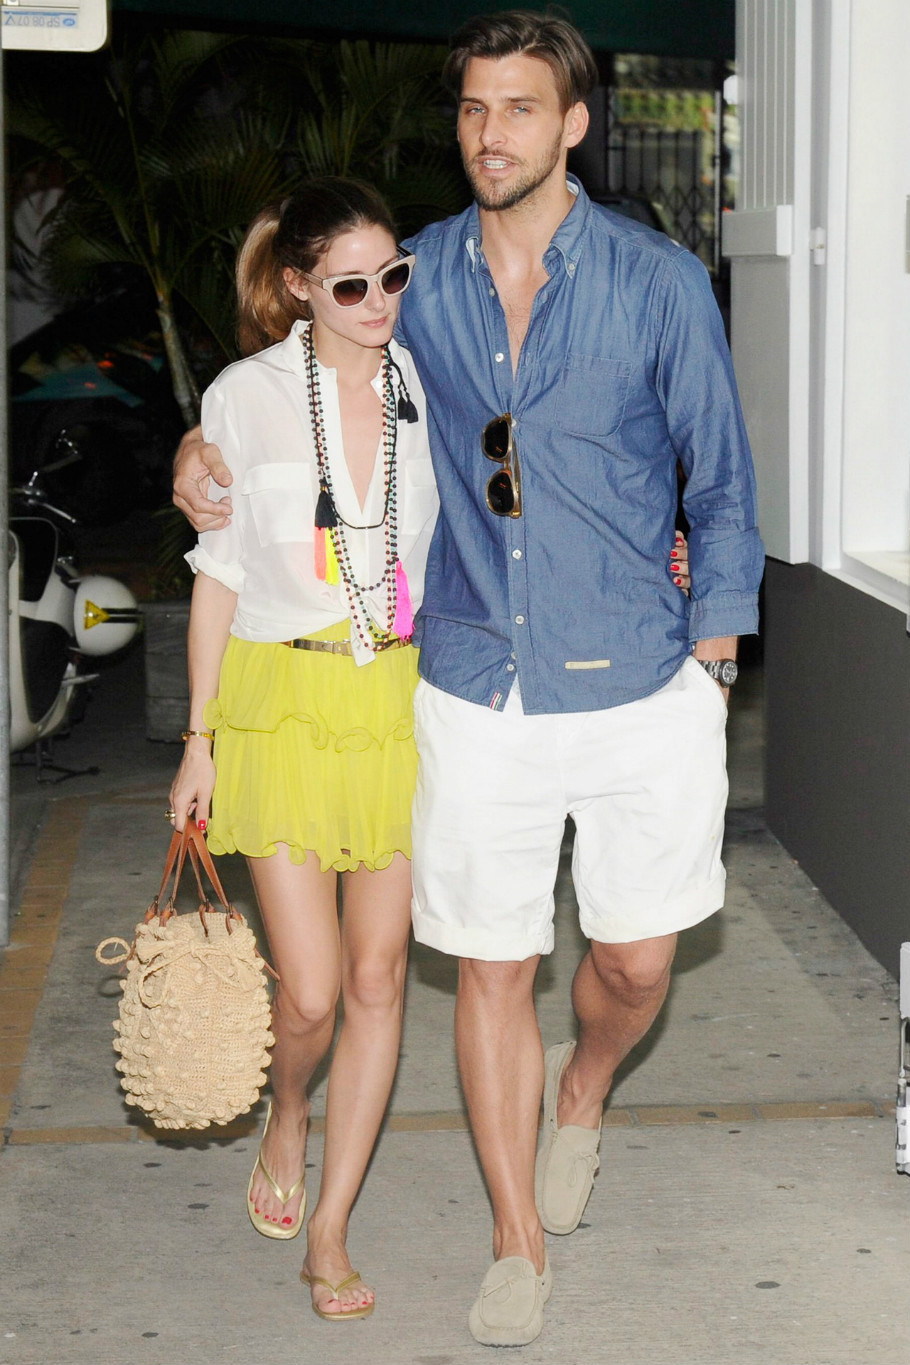 Olivia-Palermo-yellow-skirt-tassel-necklace-st-barts.jpg